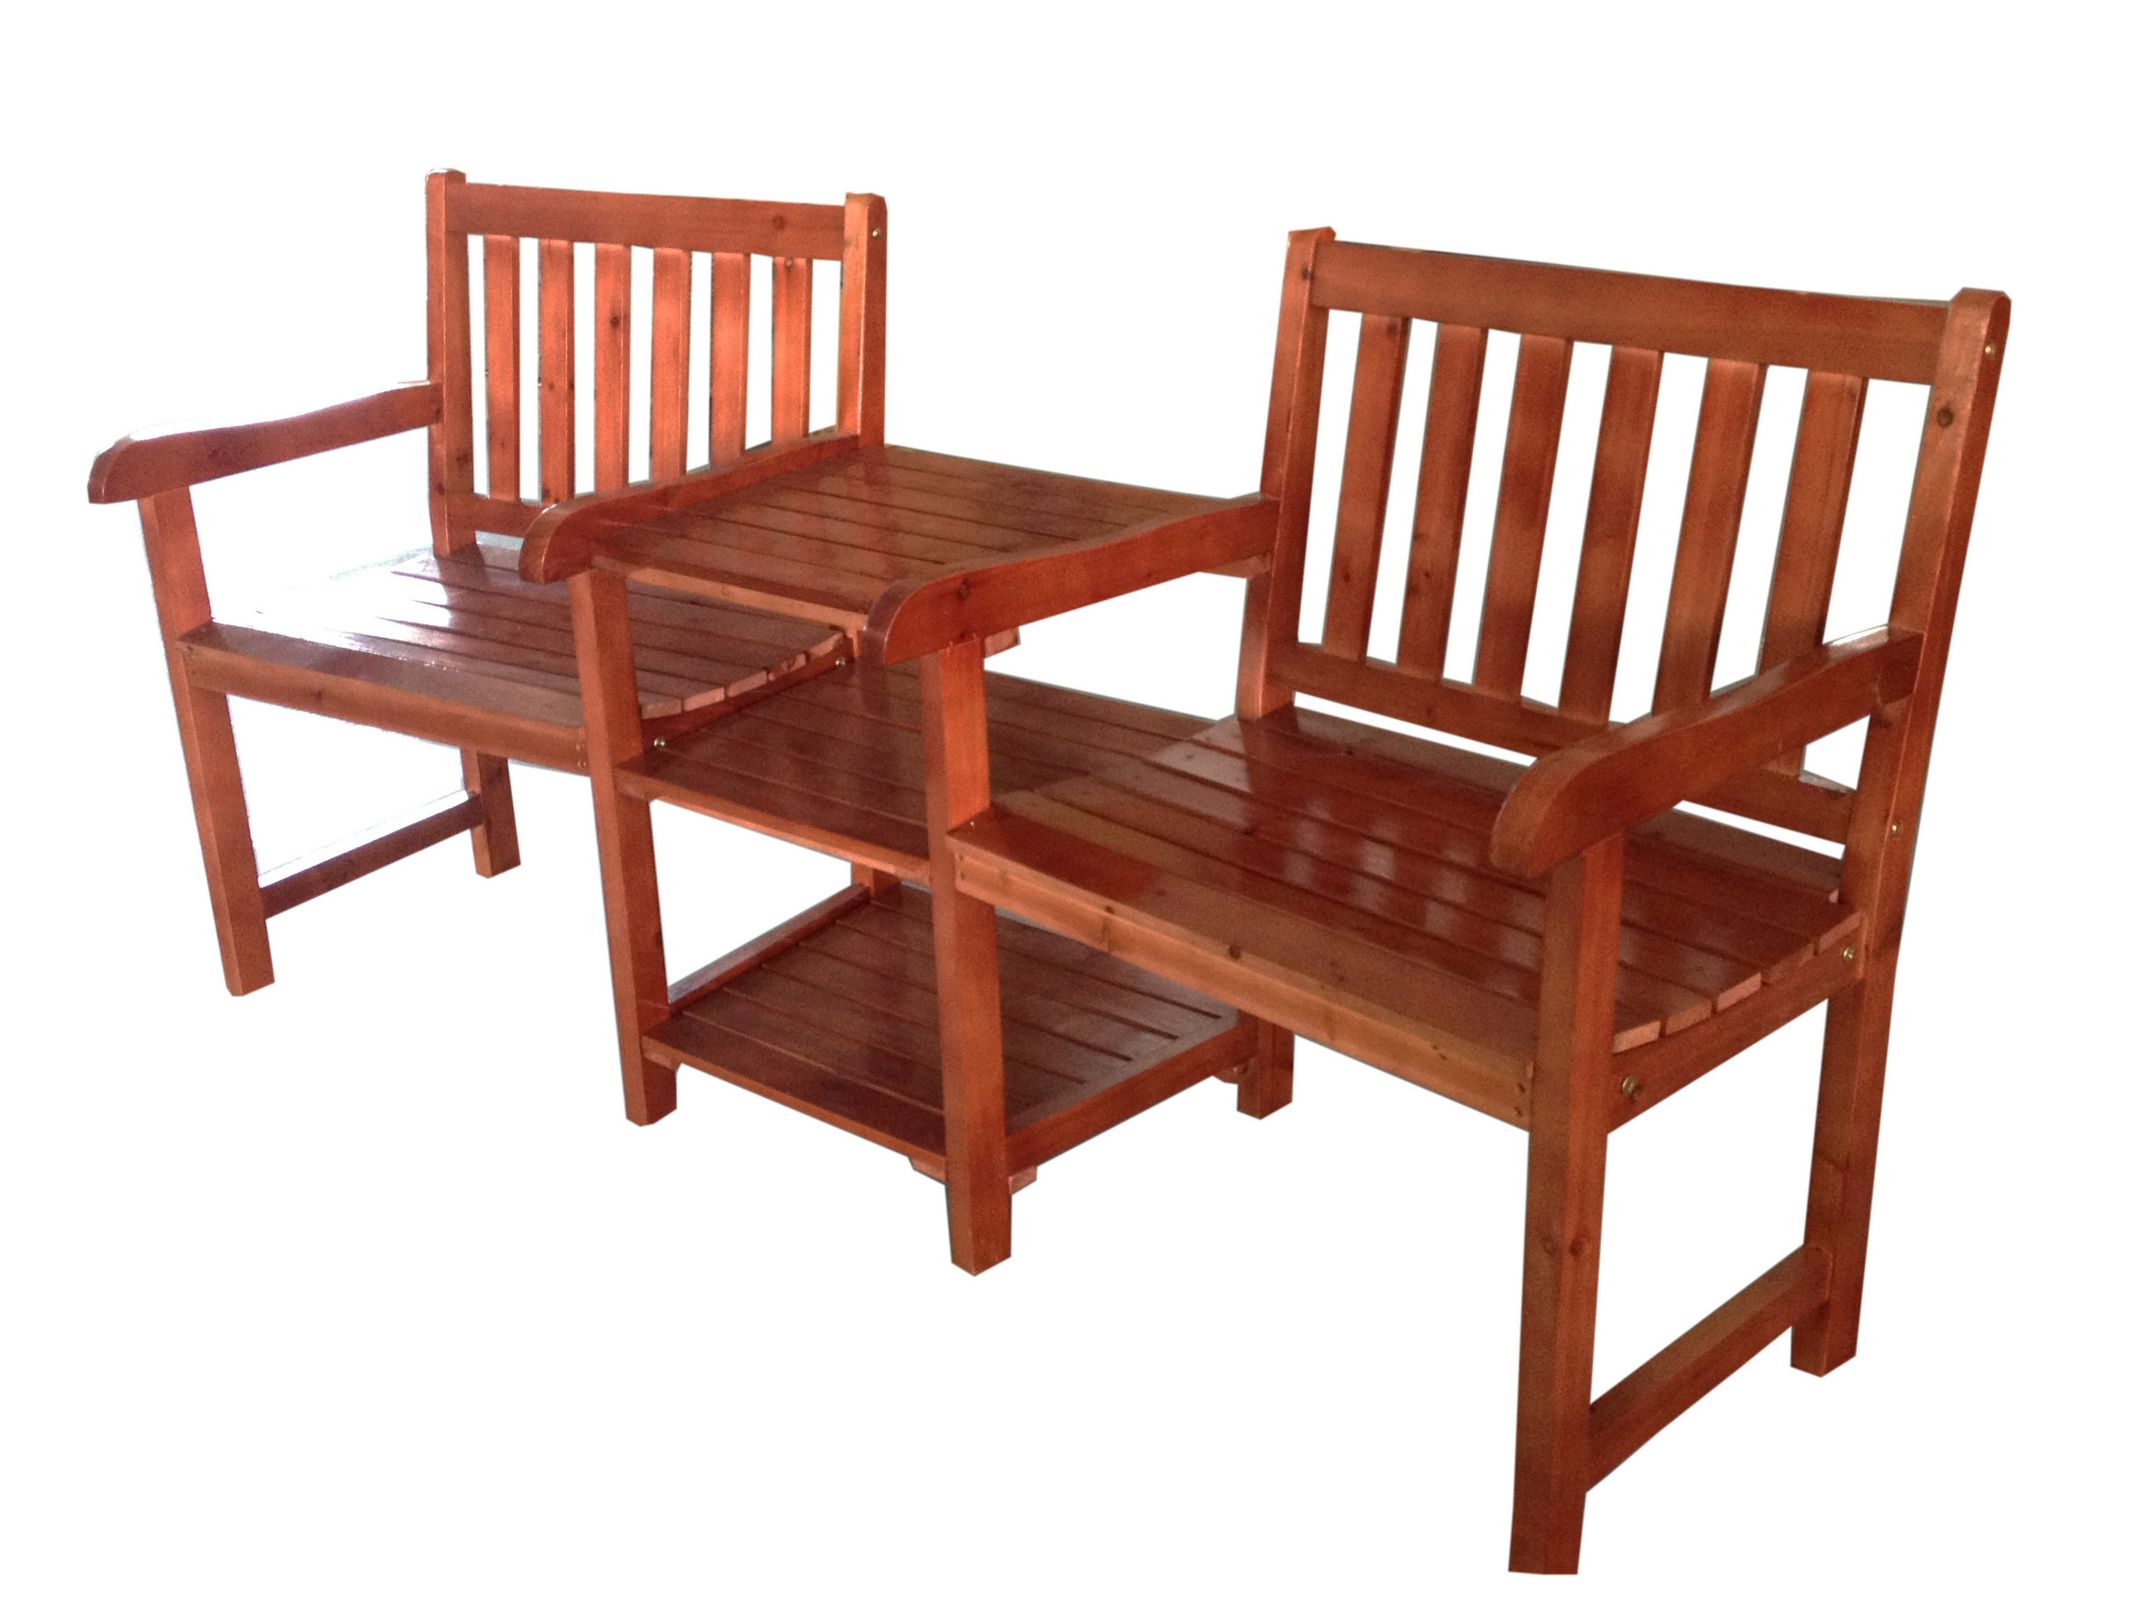 2 seater wooden companion bench chair table tawny outdoor